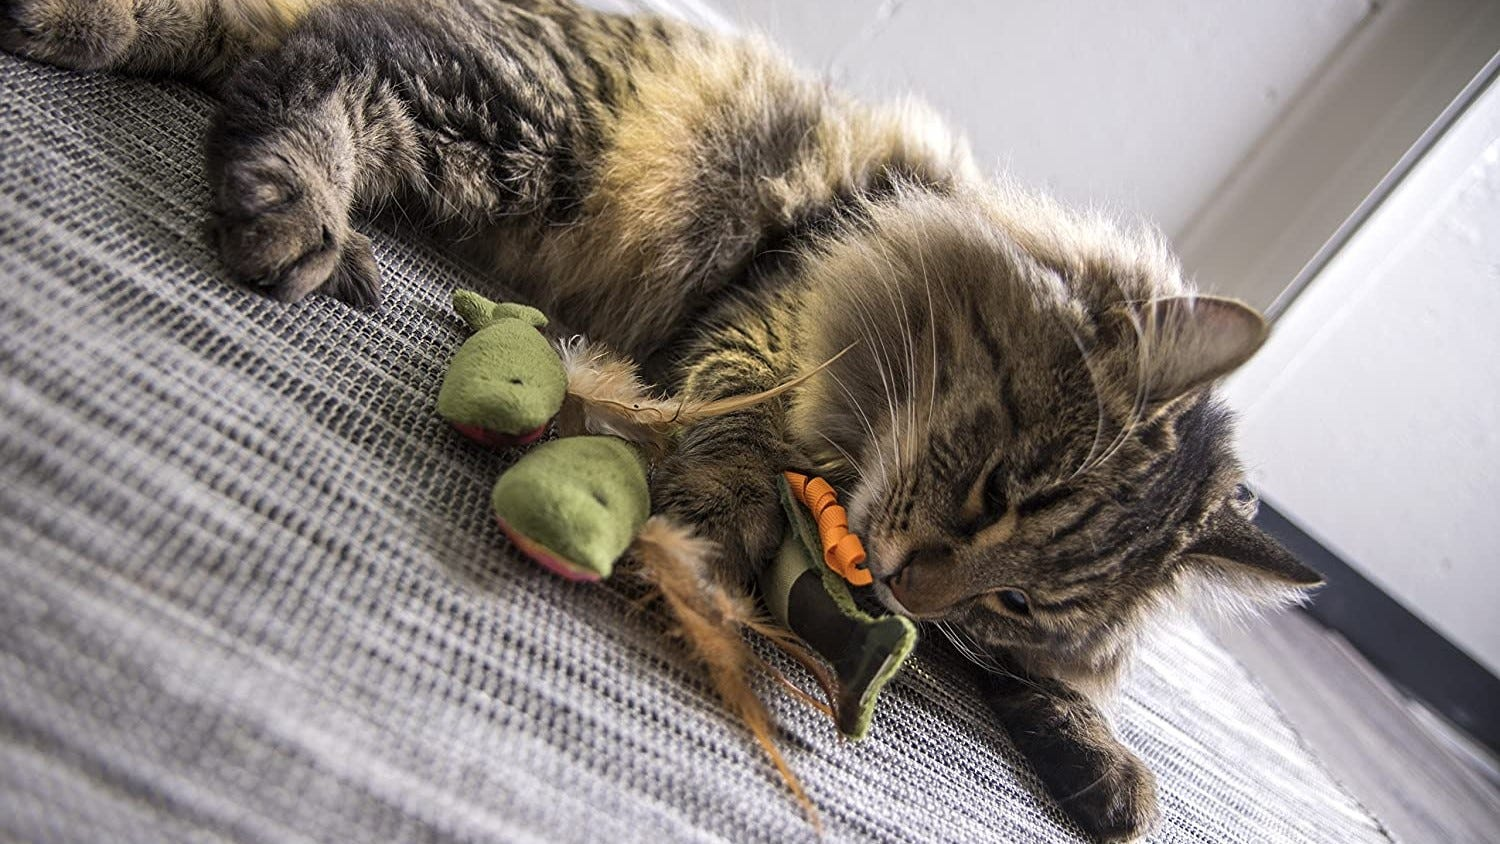 A long-haired tabby cat playing with the Fish Friends catnip toys.